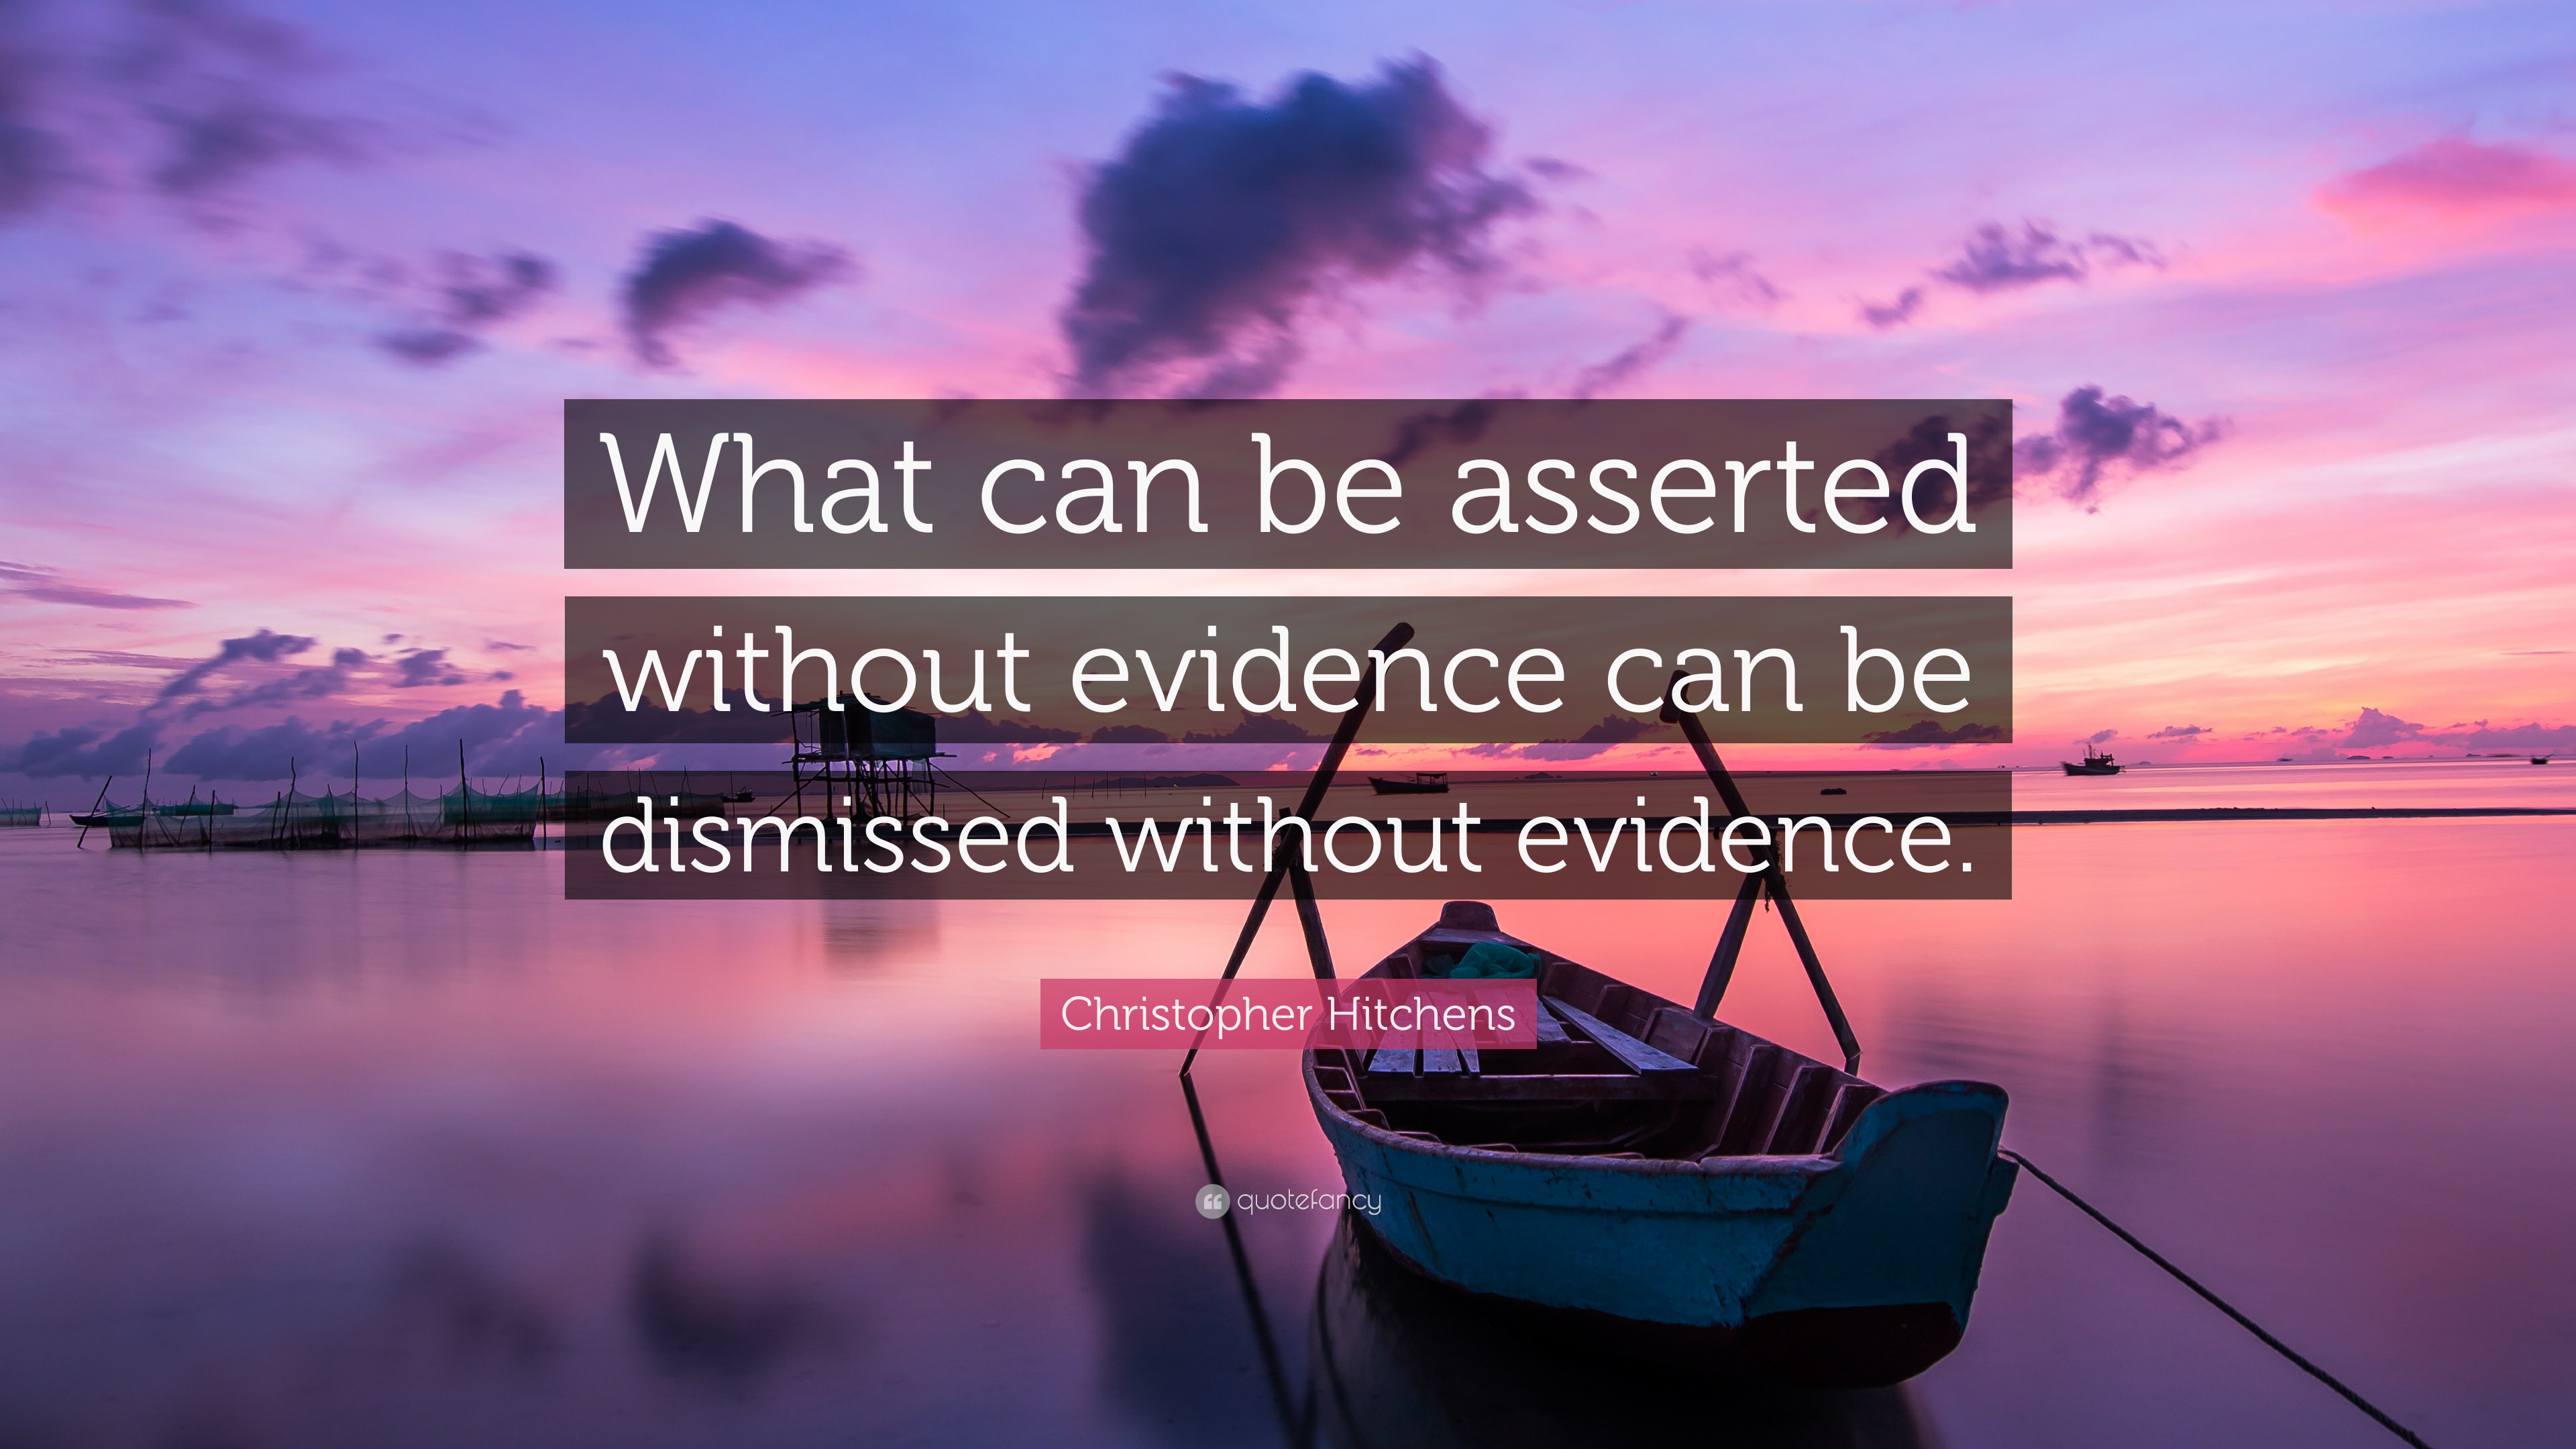 That which can be asserted without